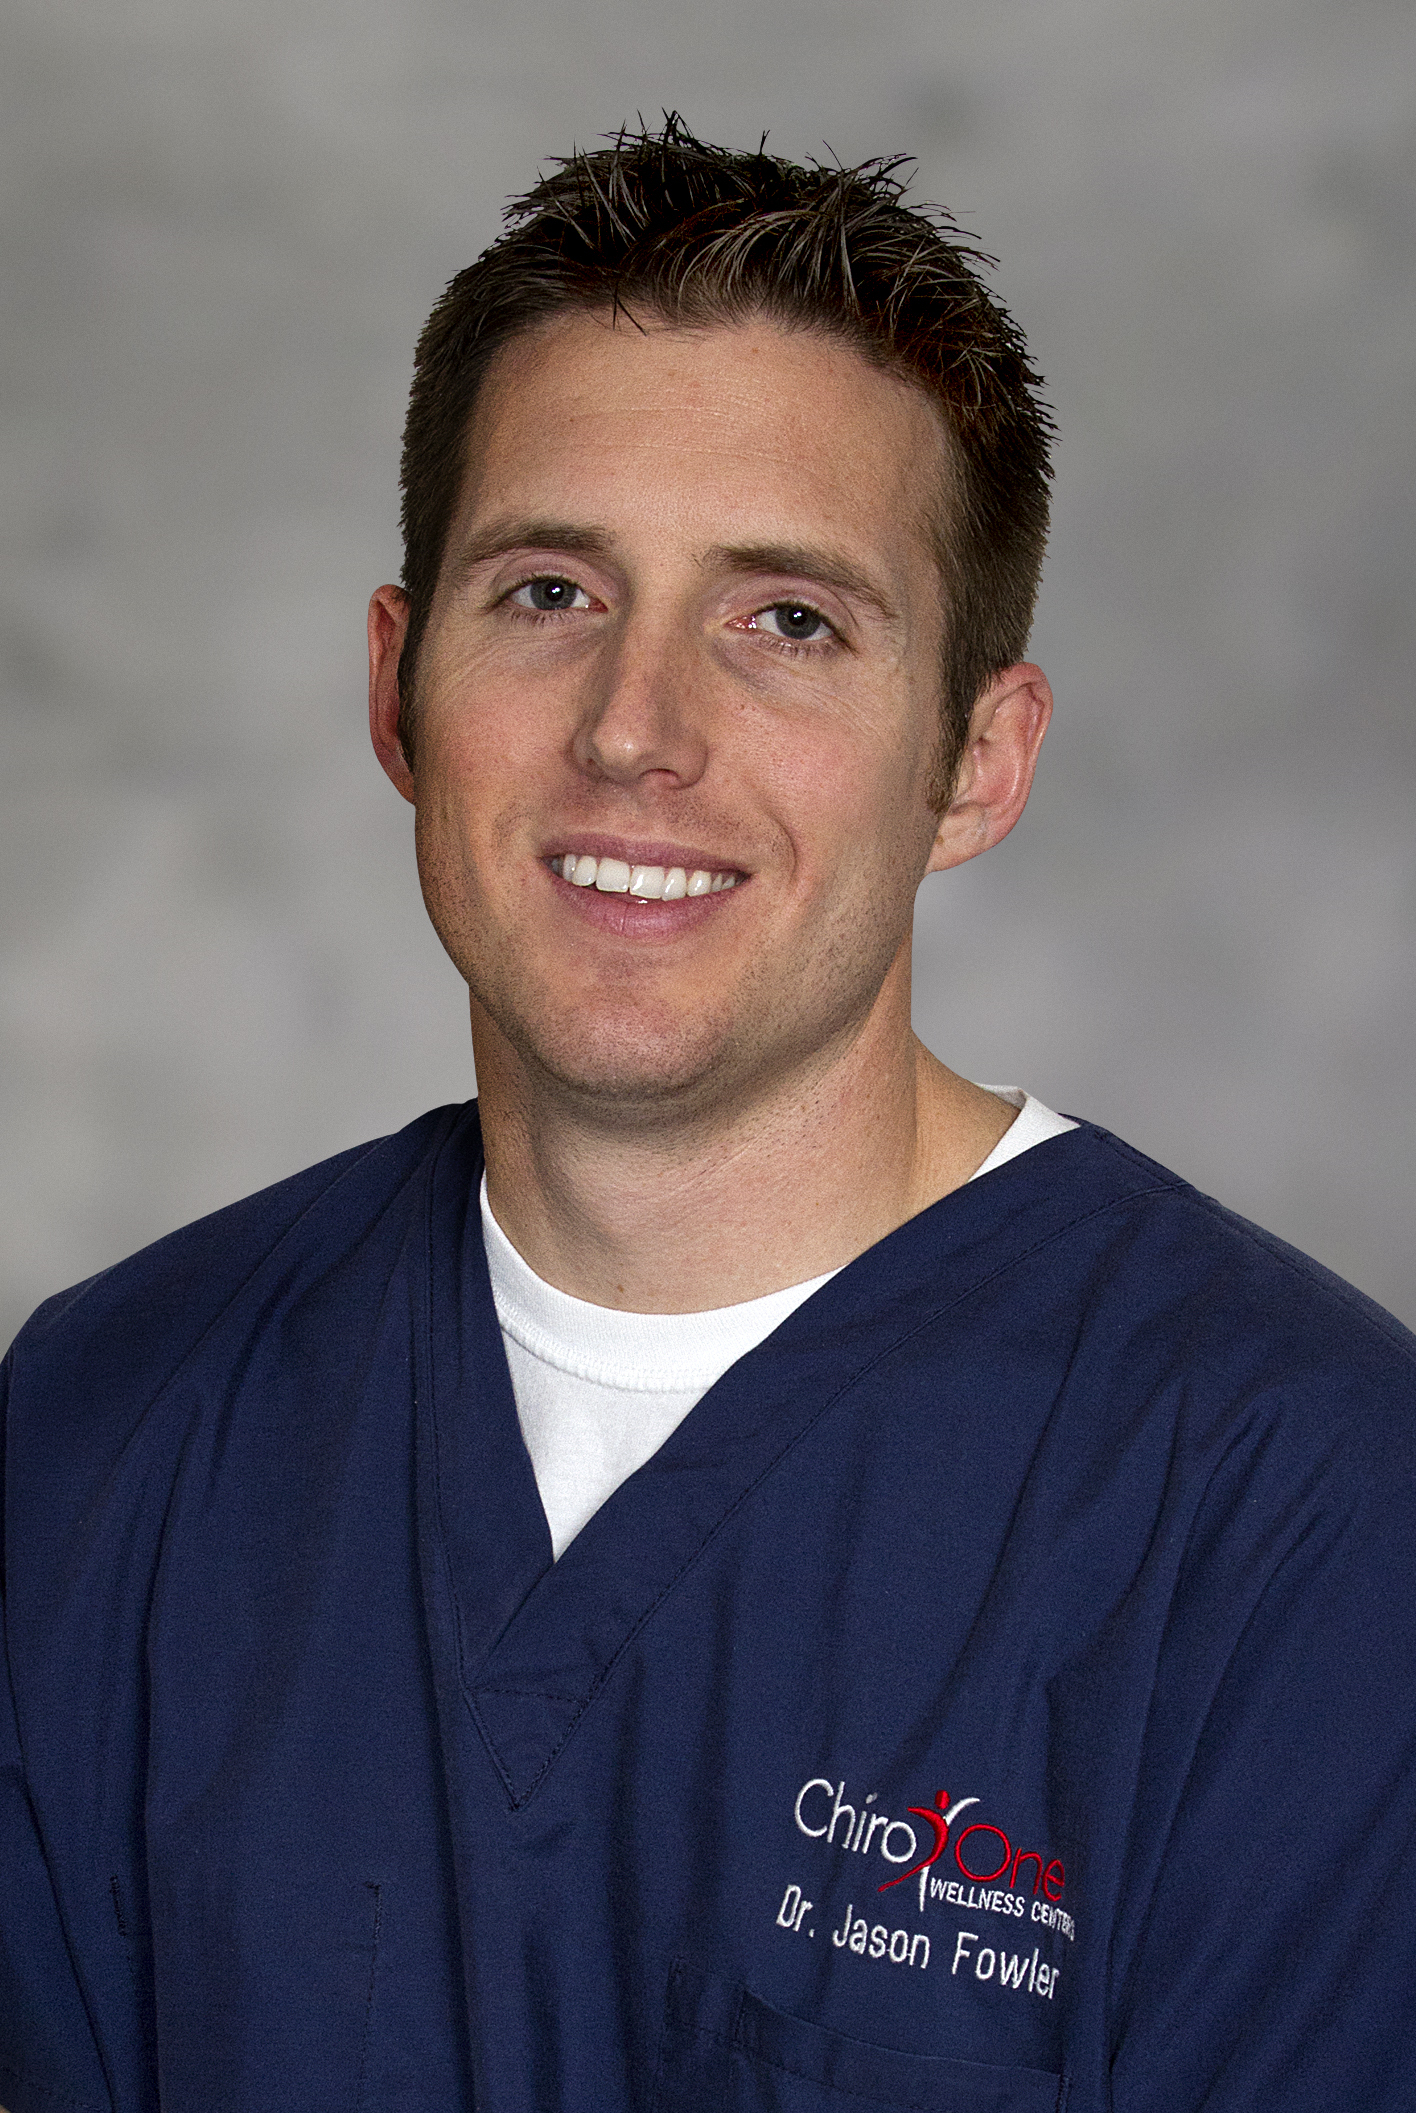 Dr. Jason Fowler, D.C. Chiropractic Director of Chiro One Wellness Center of Woodridge